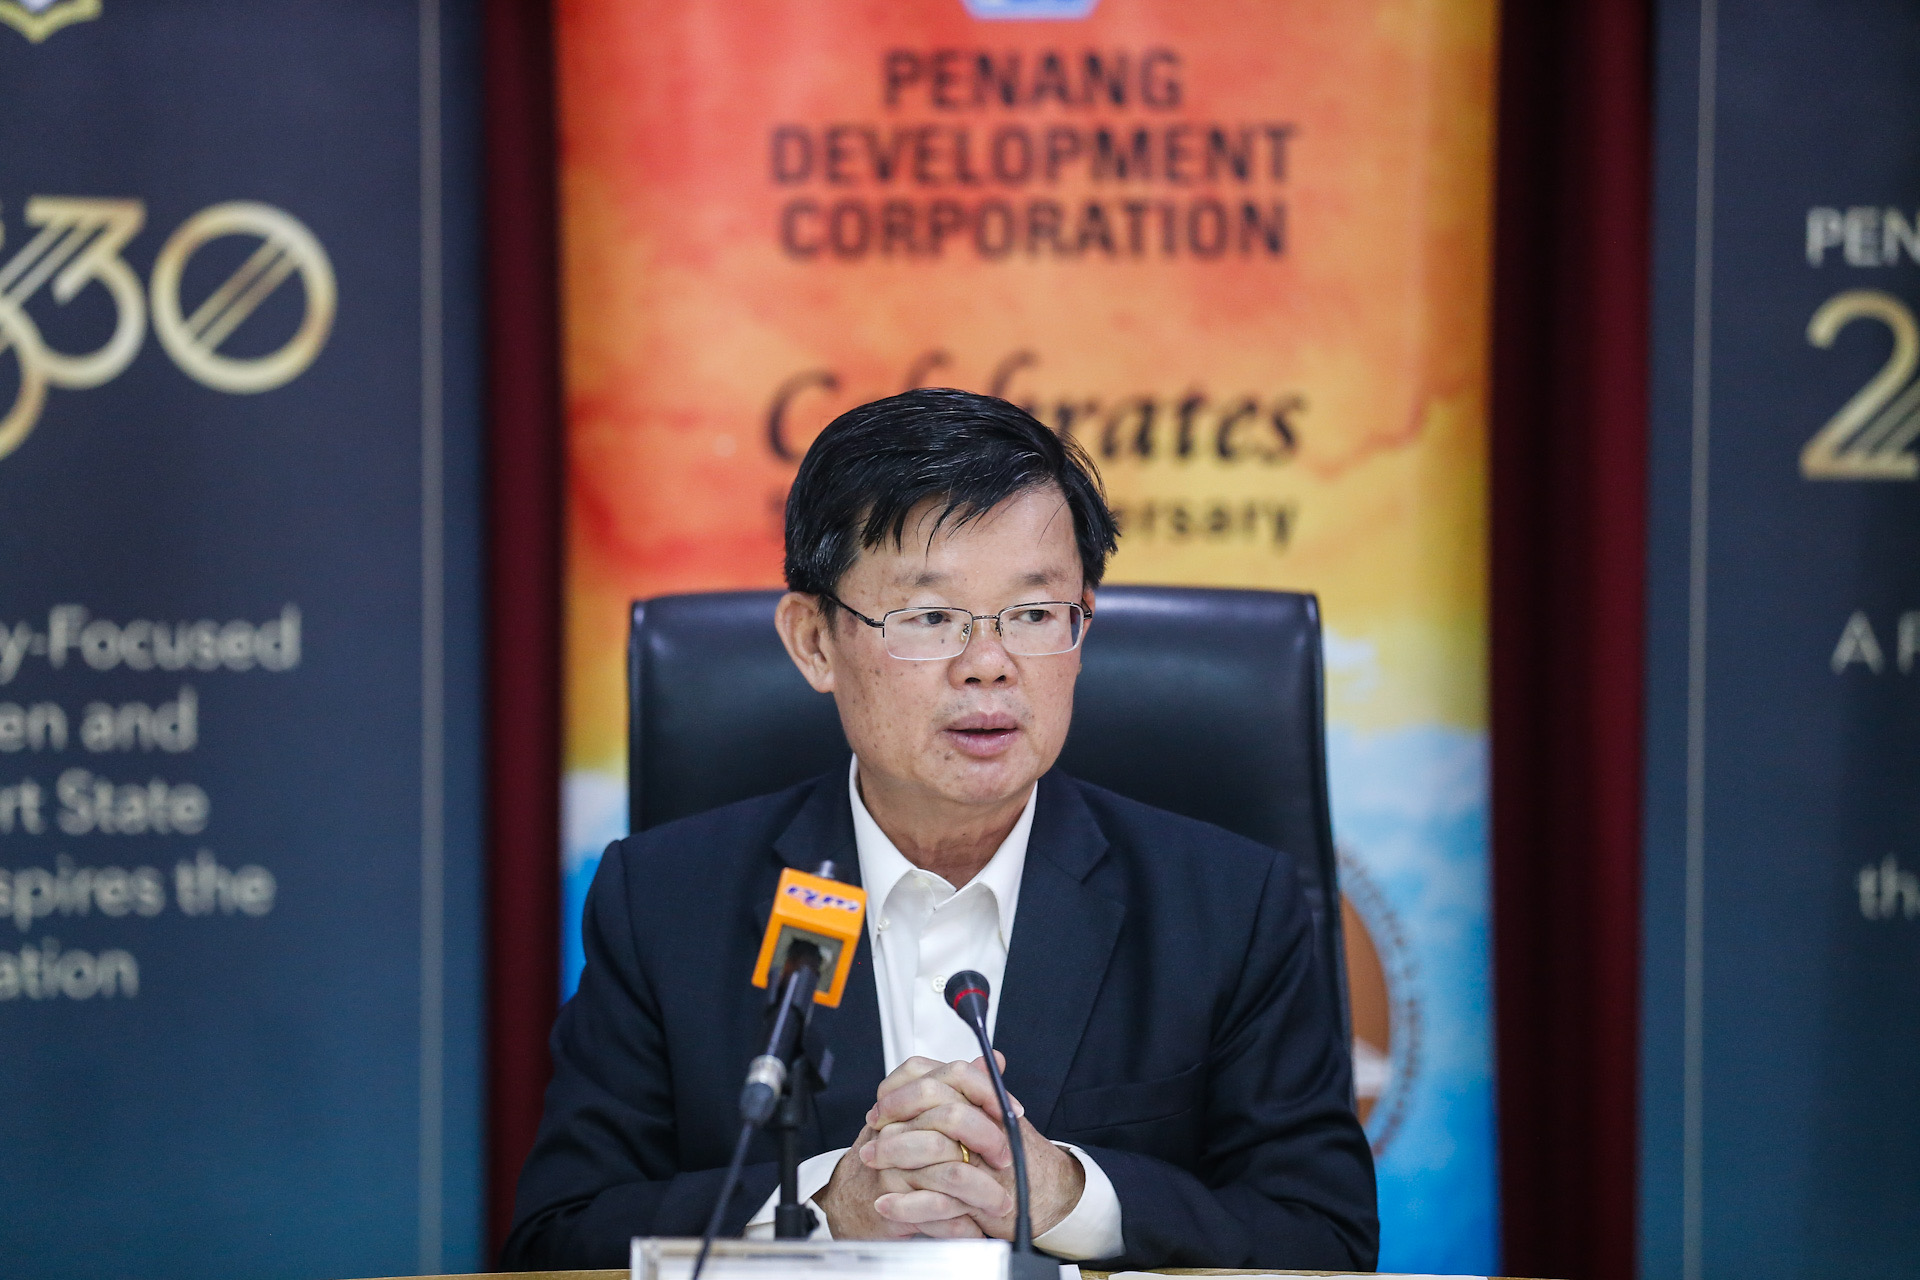 Penang Chief Minister Chow Kon Yeow speaks to the press during the agreement exchange between Penang Development Corporation and Biopolis Resources Sdn Bhd at Komtar January 20, 2020. — Picture by Sayuti Zainudin